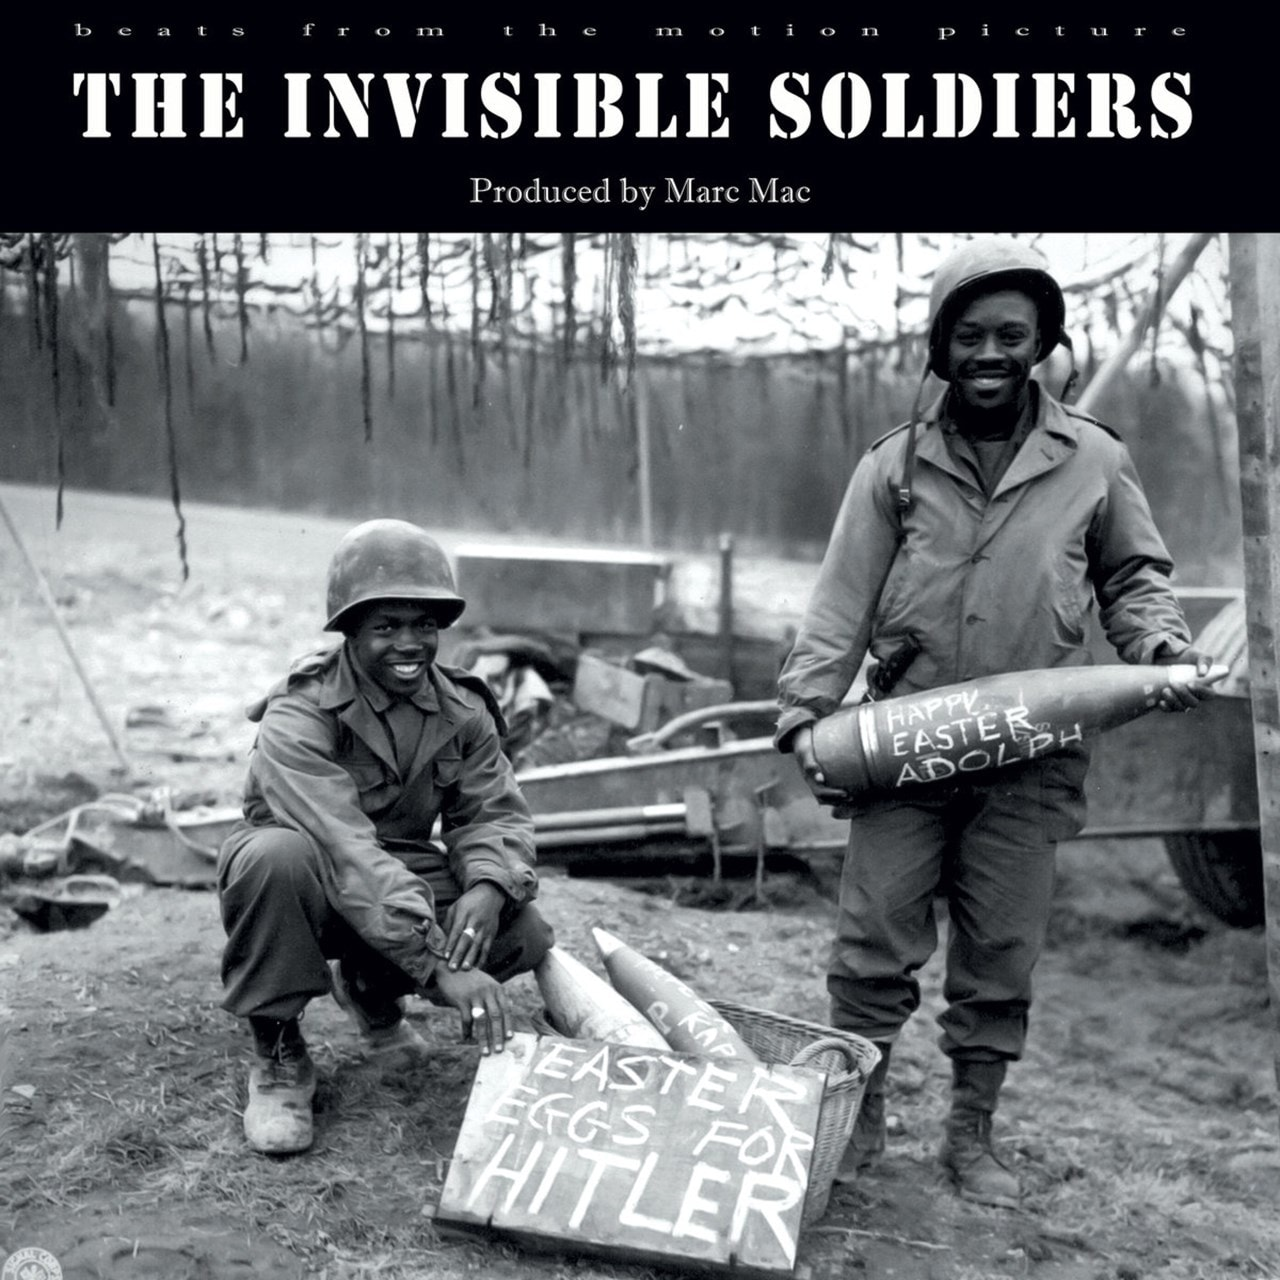 The Invisible Soldiers - 1